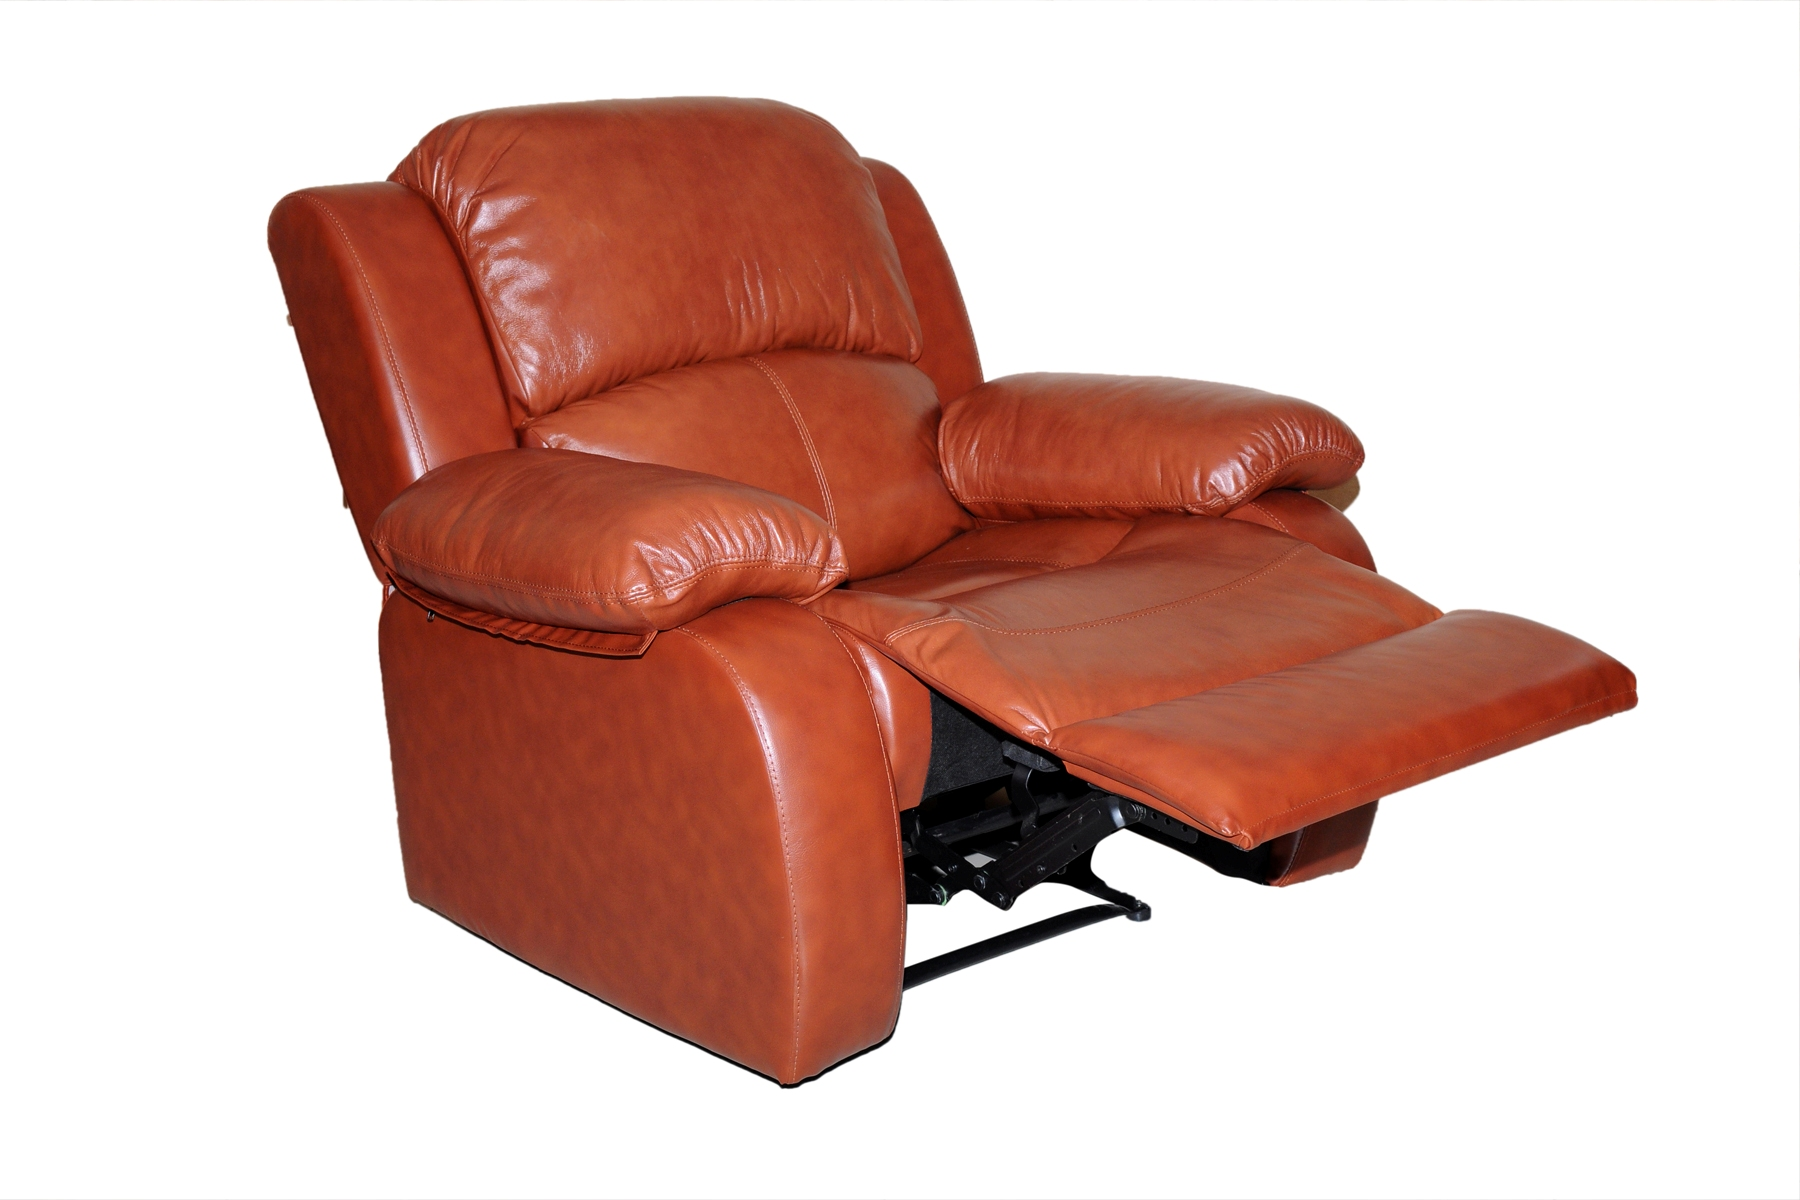 Recliner in Living Furniture at Indroyal